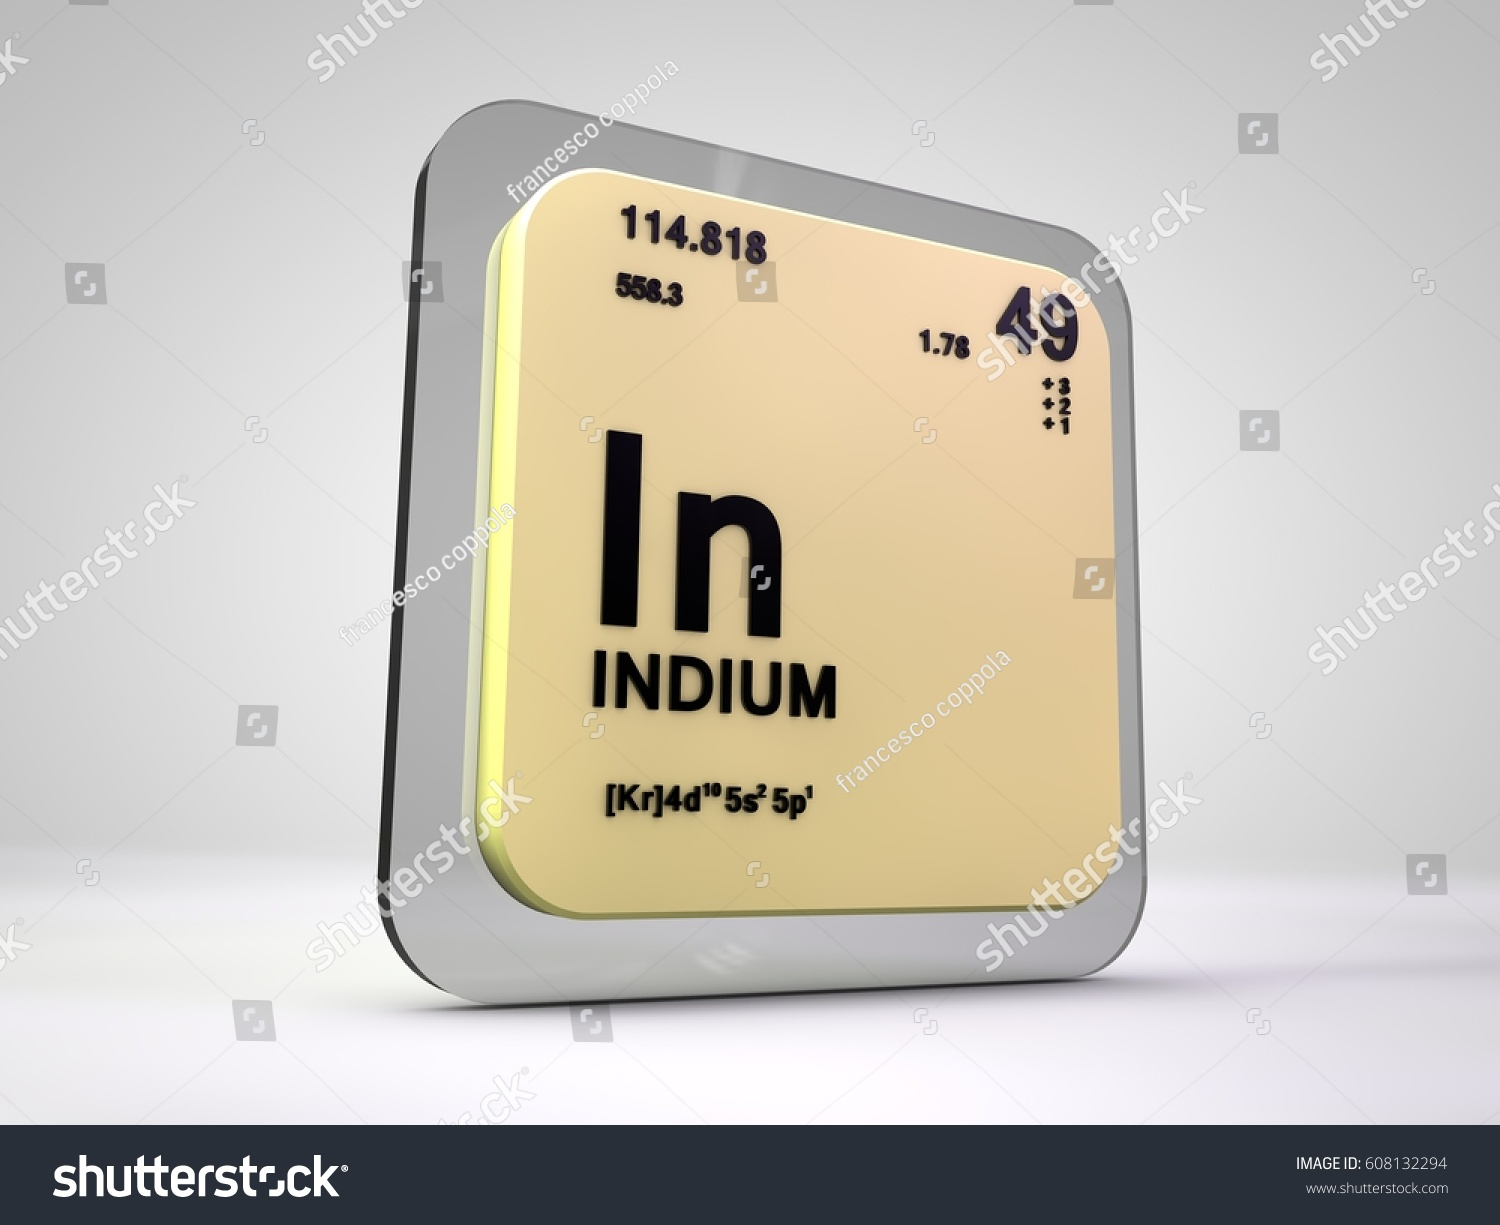 Indium chemical element periodic table 3d stock illustration indium in chemical element periodic table 3d render gamestrikefo Gallery